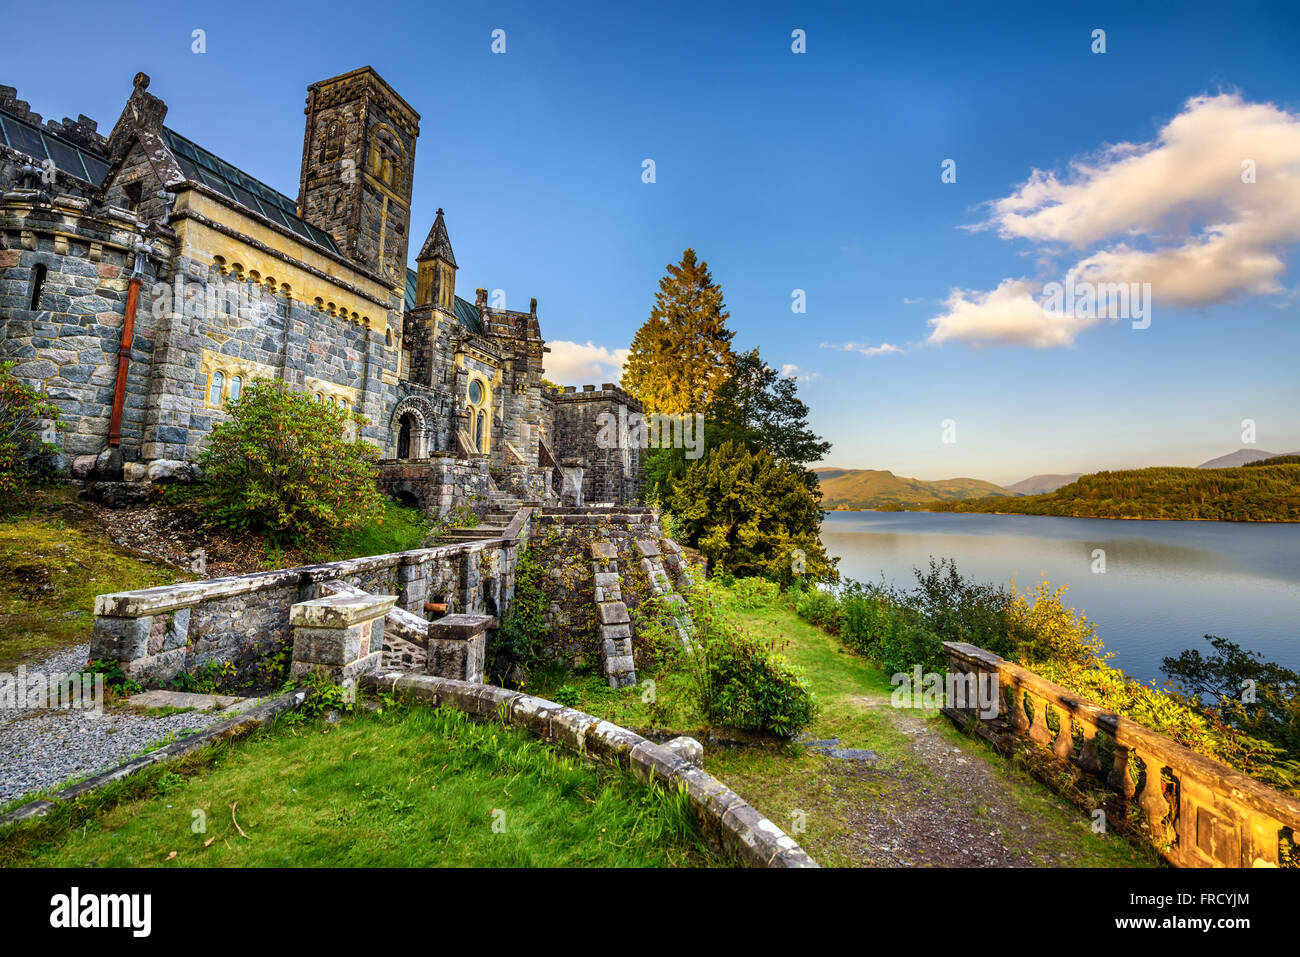 St Conans Kirk located in Loch Awe, Argyll and Bute, Scotland - Stock Image